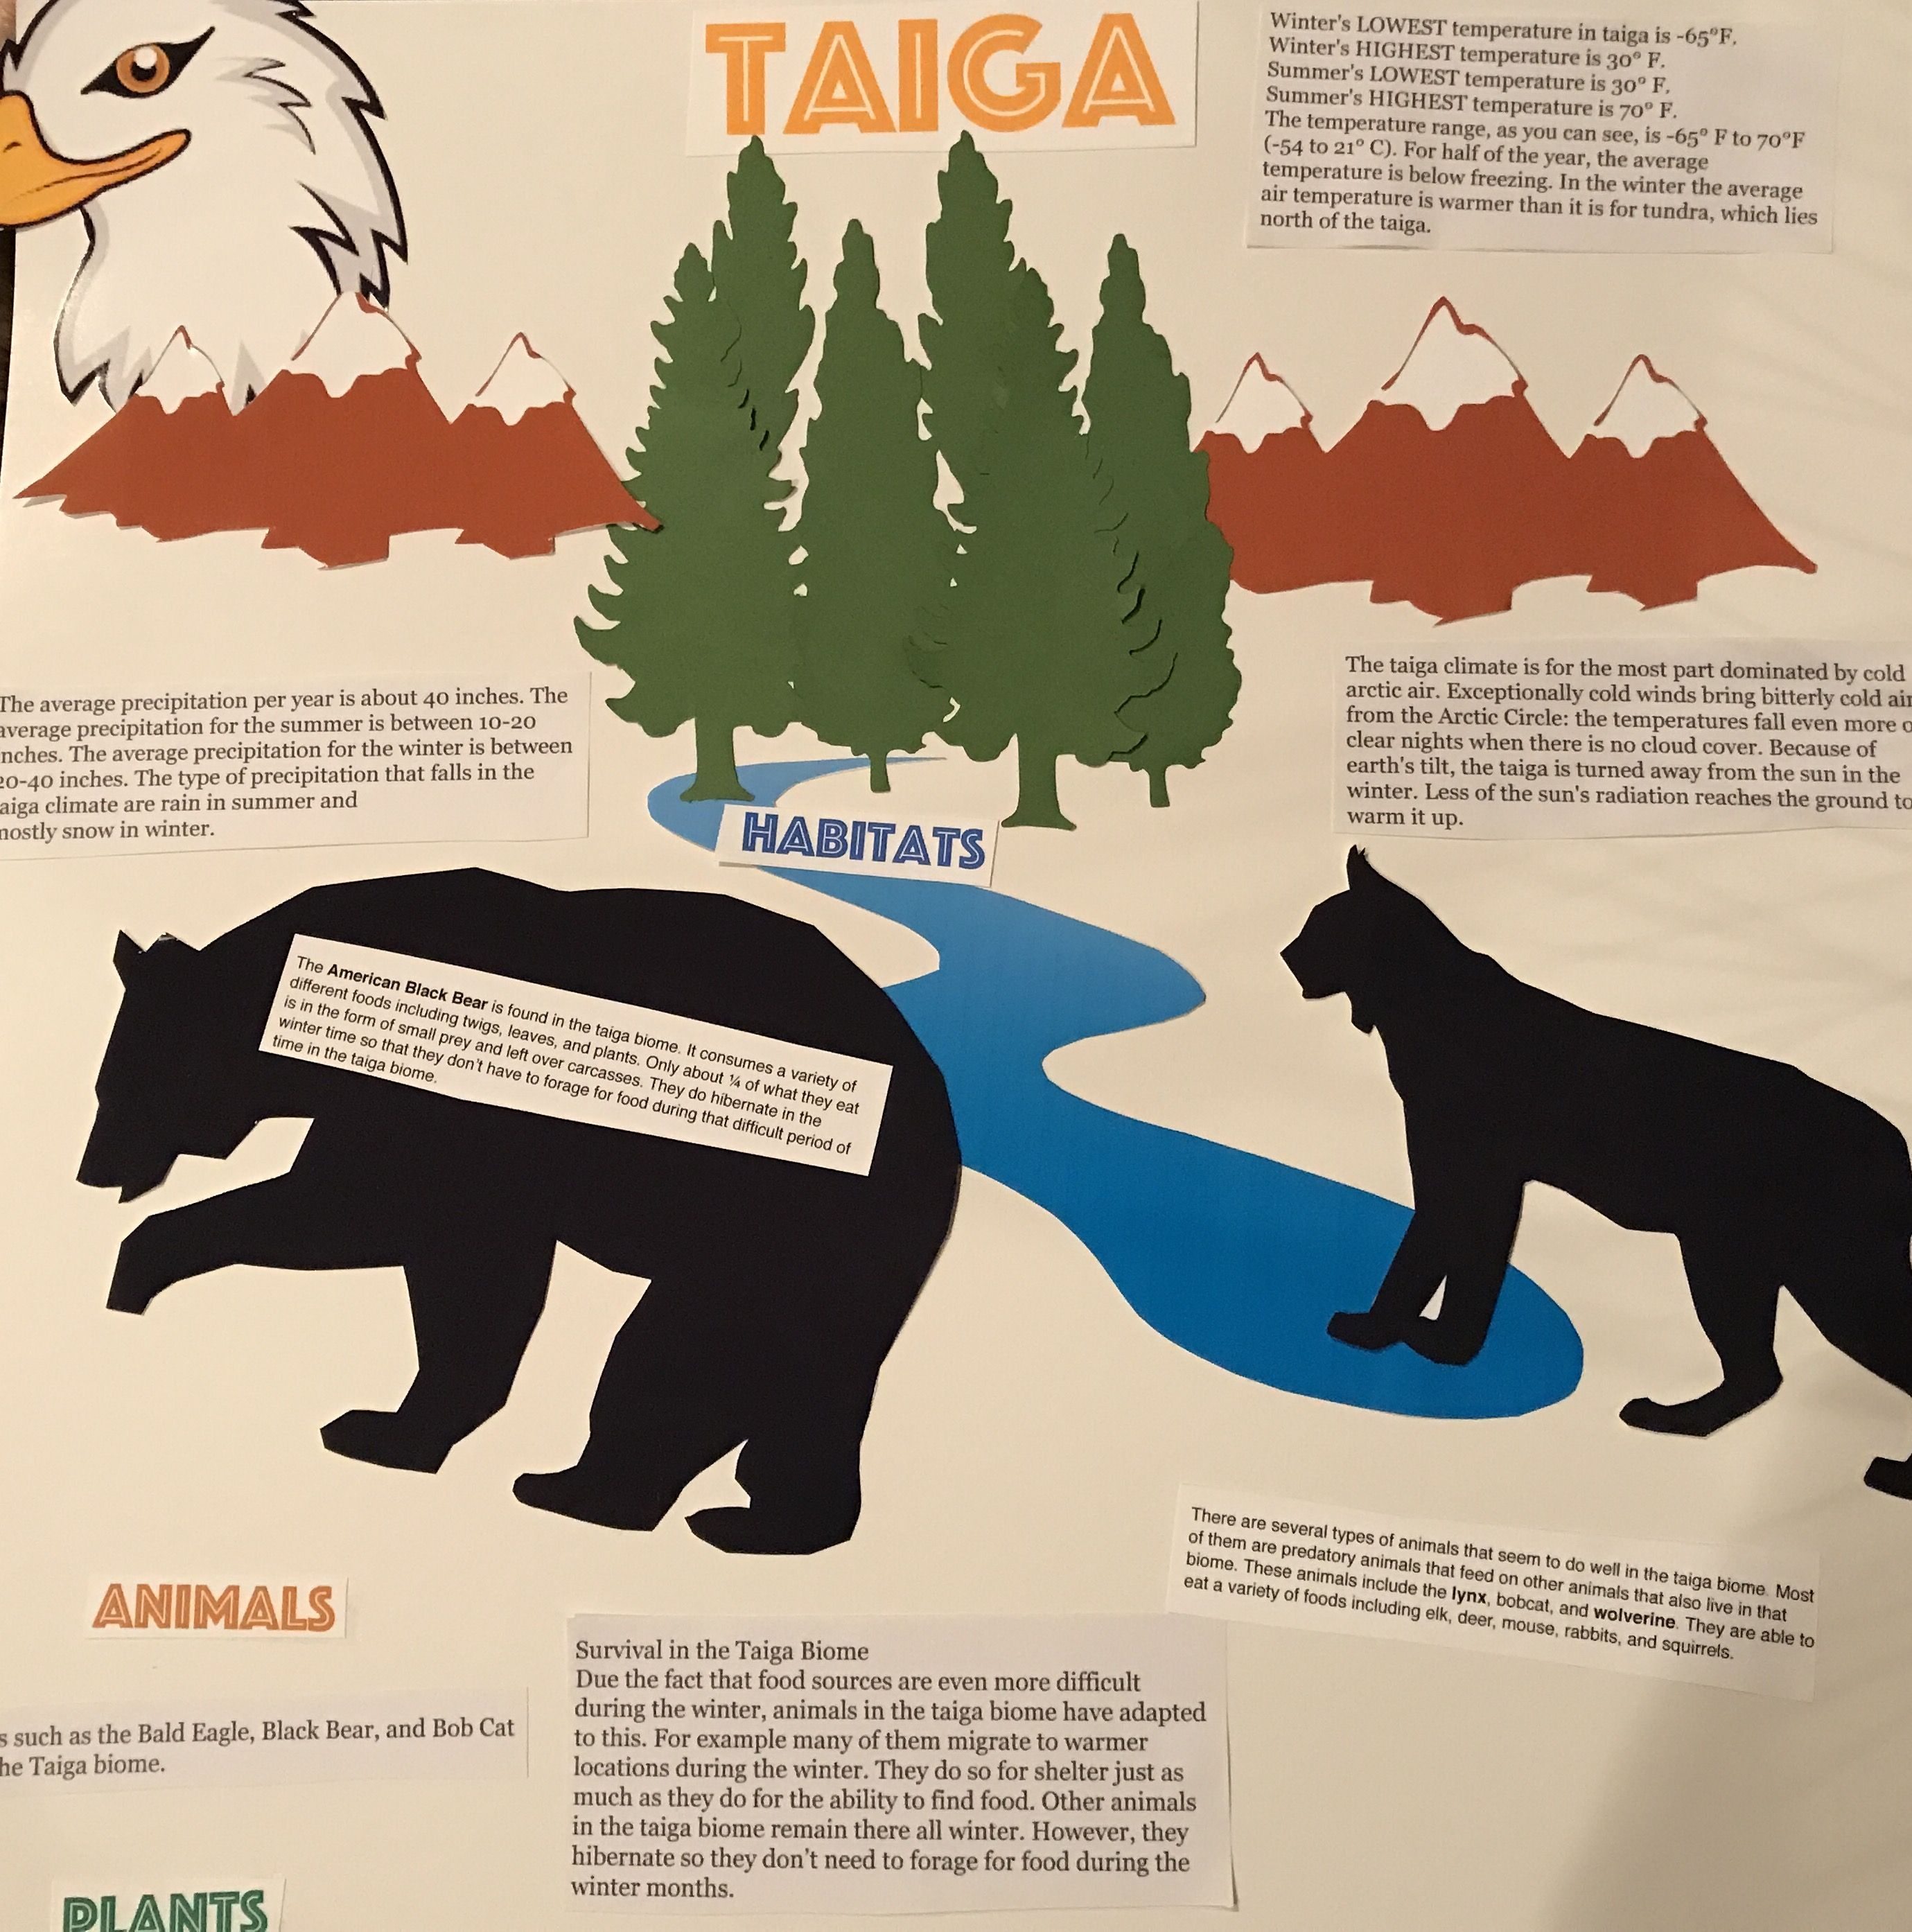 Pin by April Awer on School Projects Biomes, Habitats